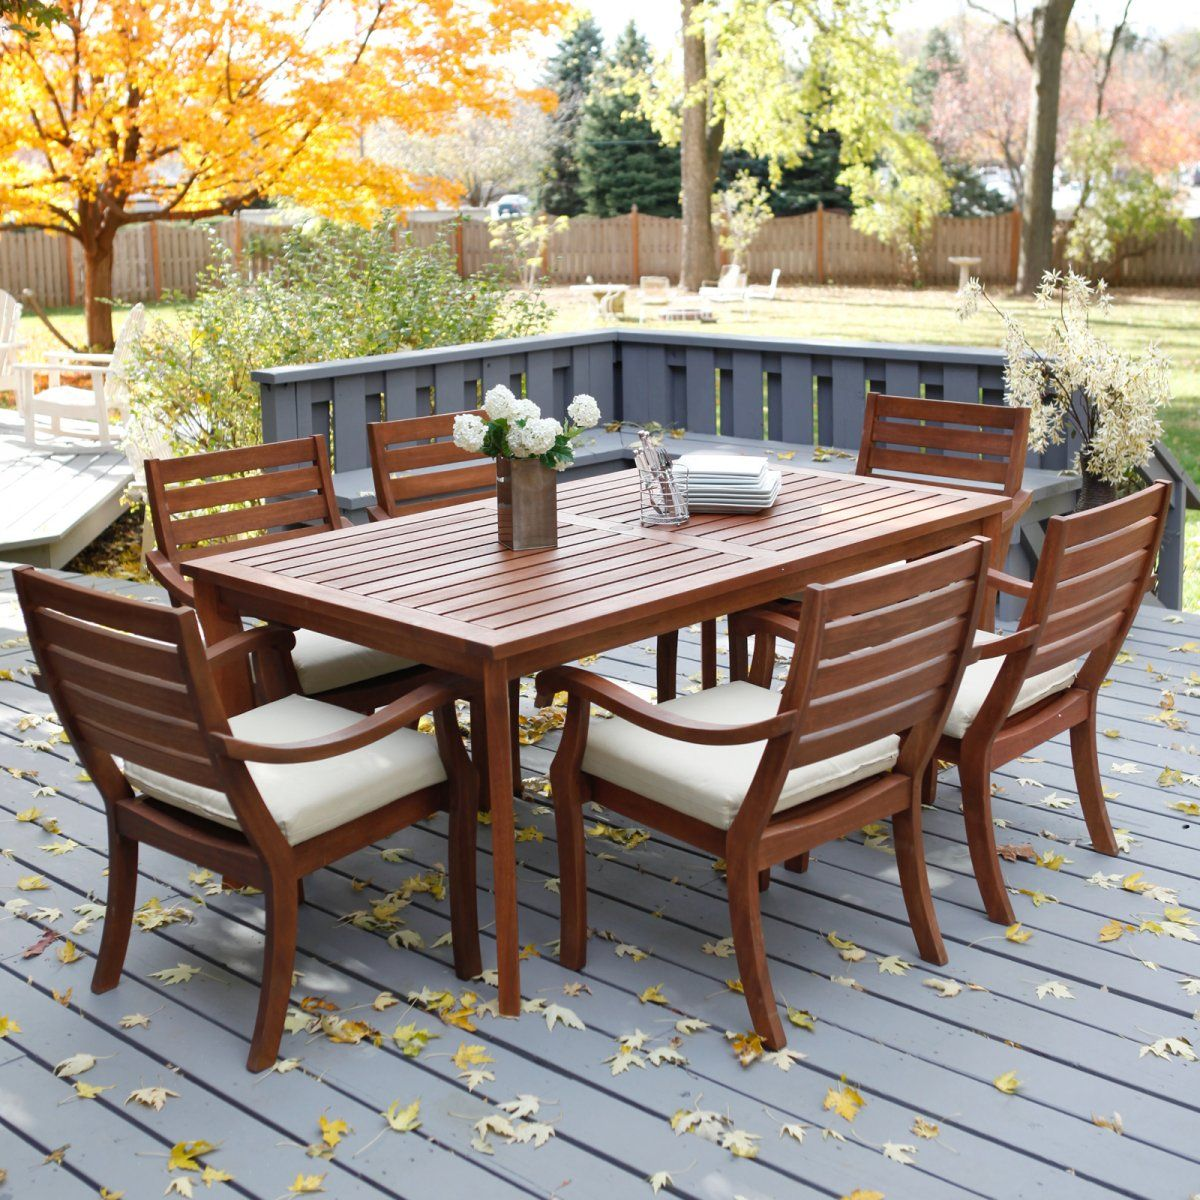 Arbor Patio Dining Set With Optional Umbrella Seats 6